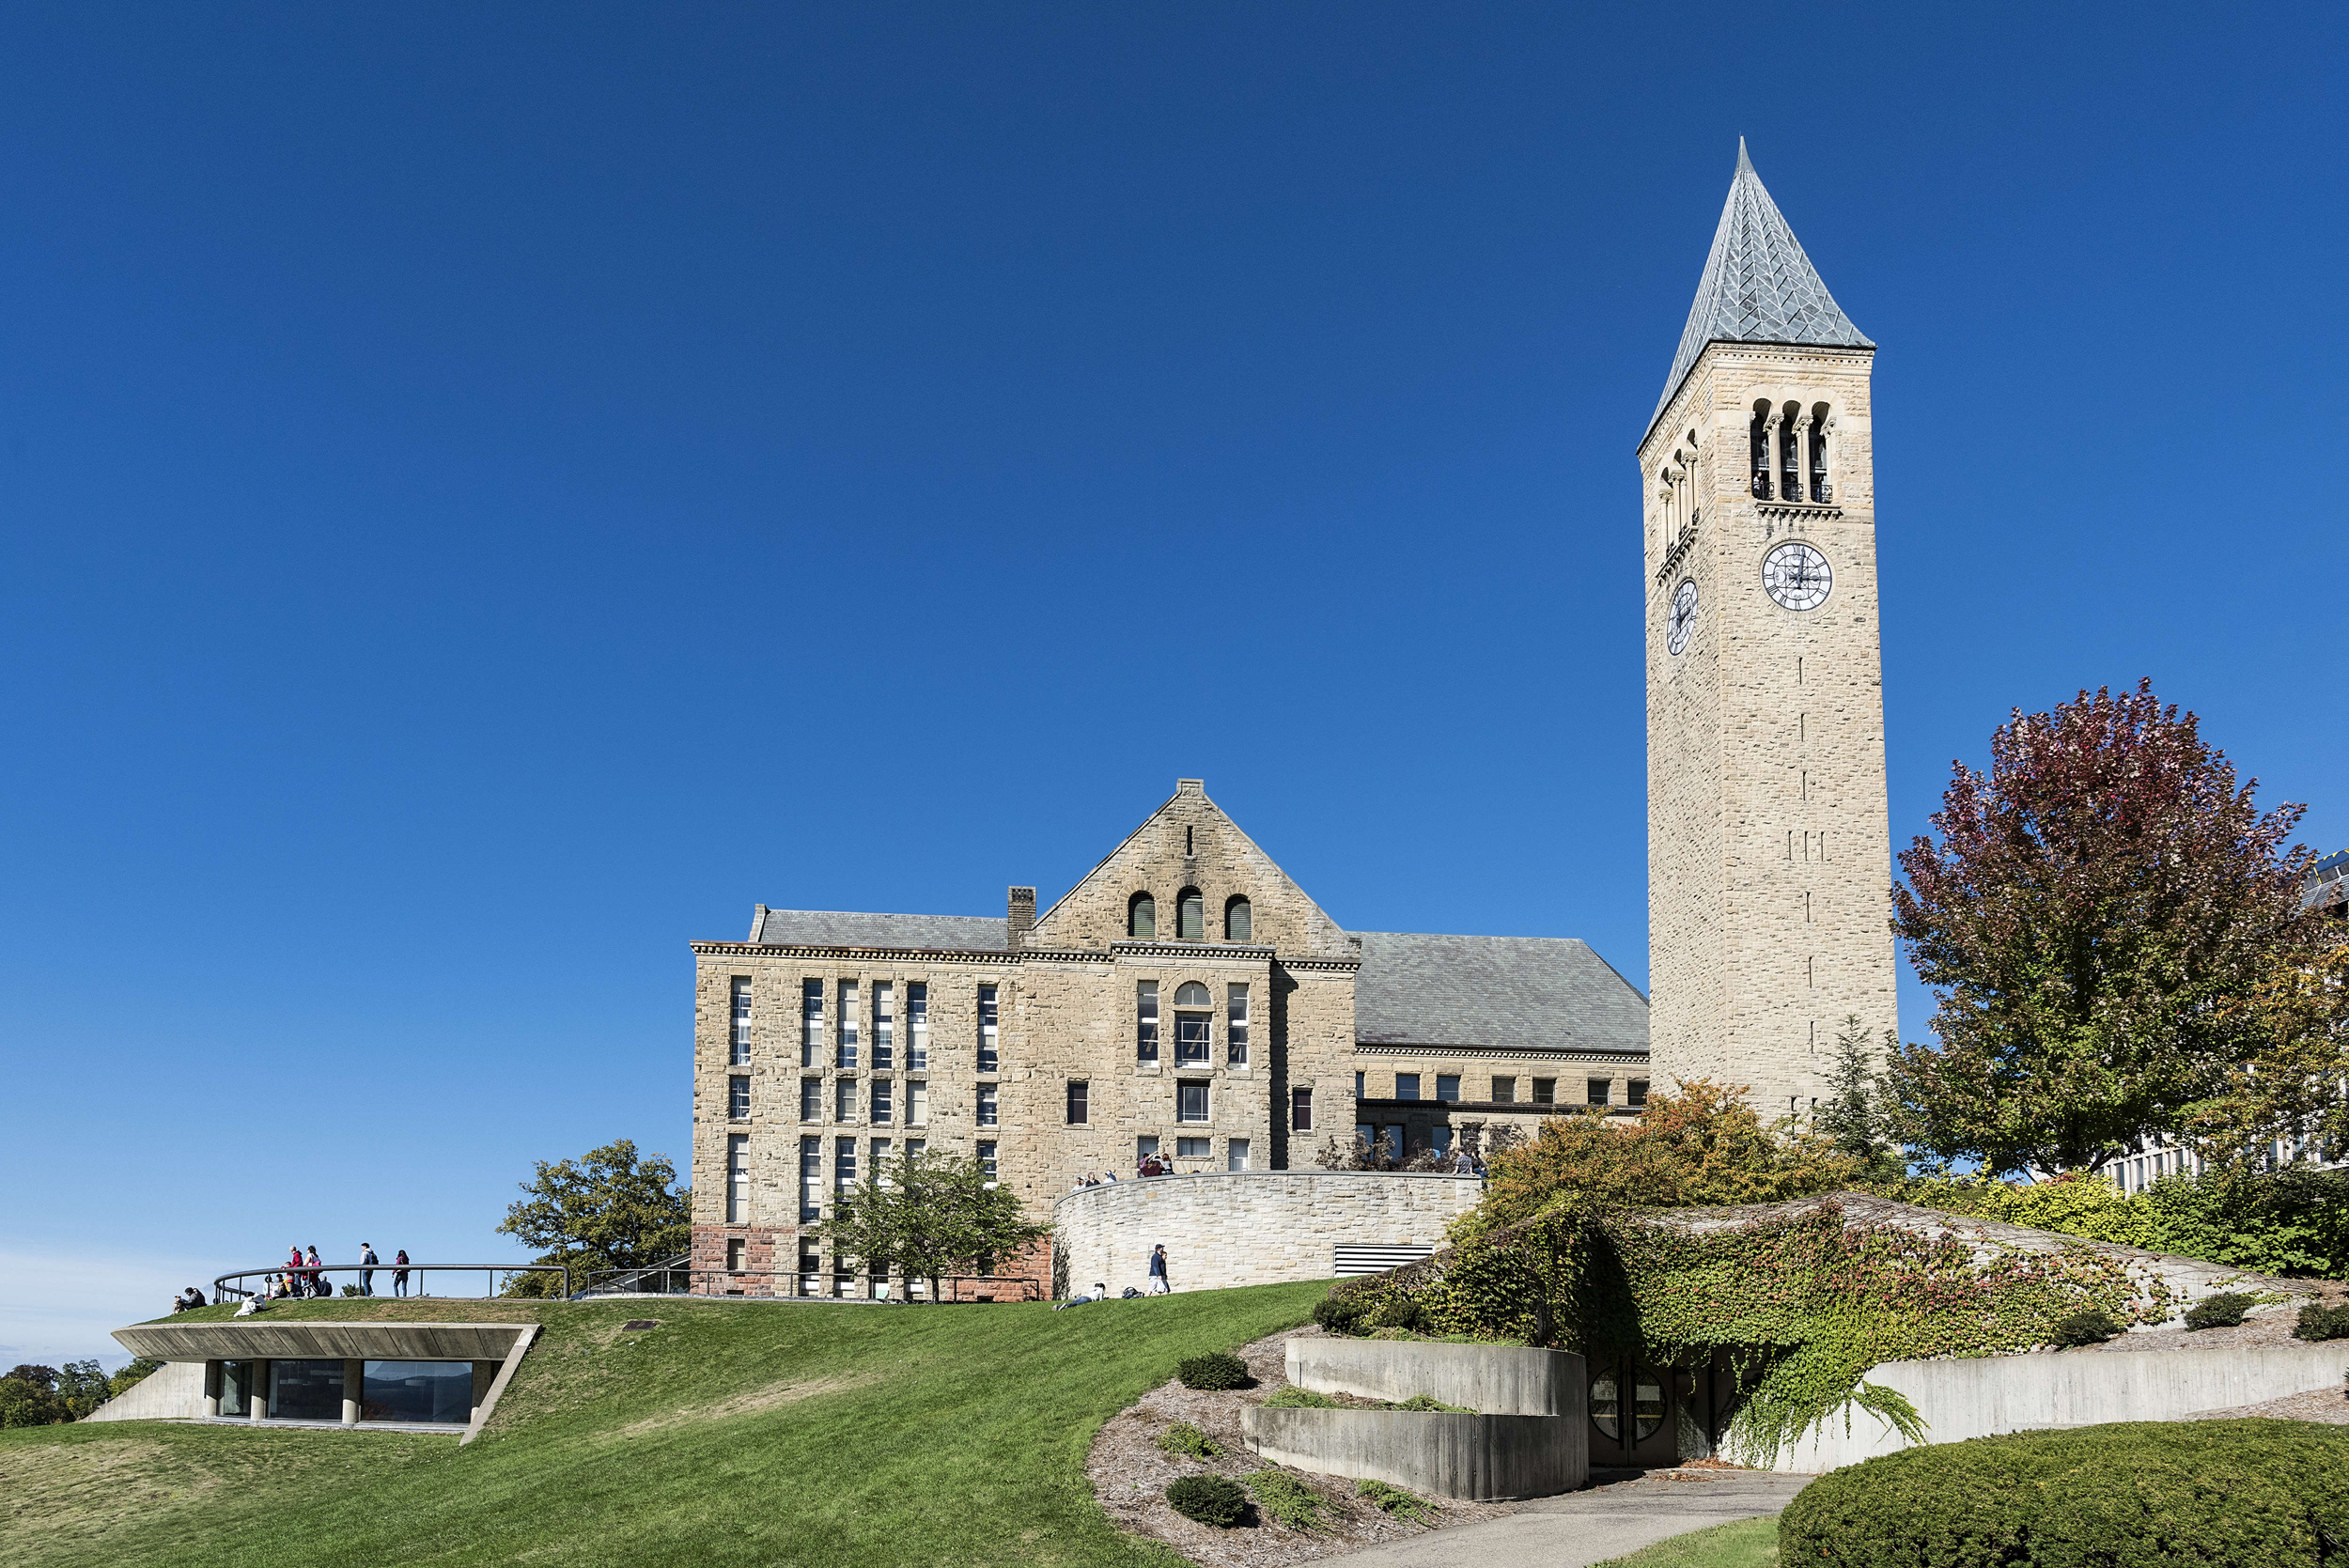 Incidents like Cornell 'pig roast' harder to police after Title IX rollbacks